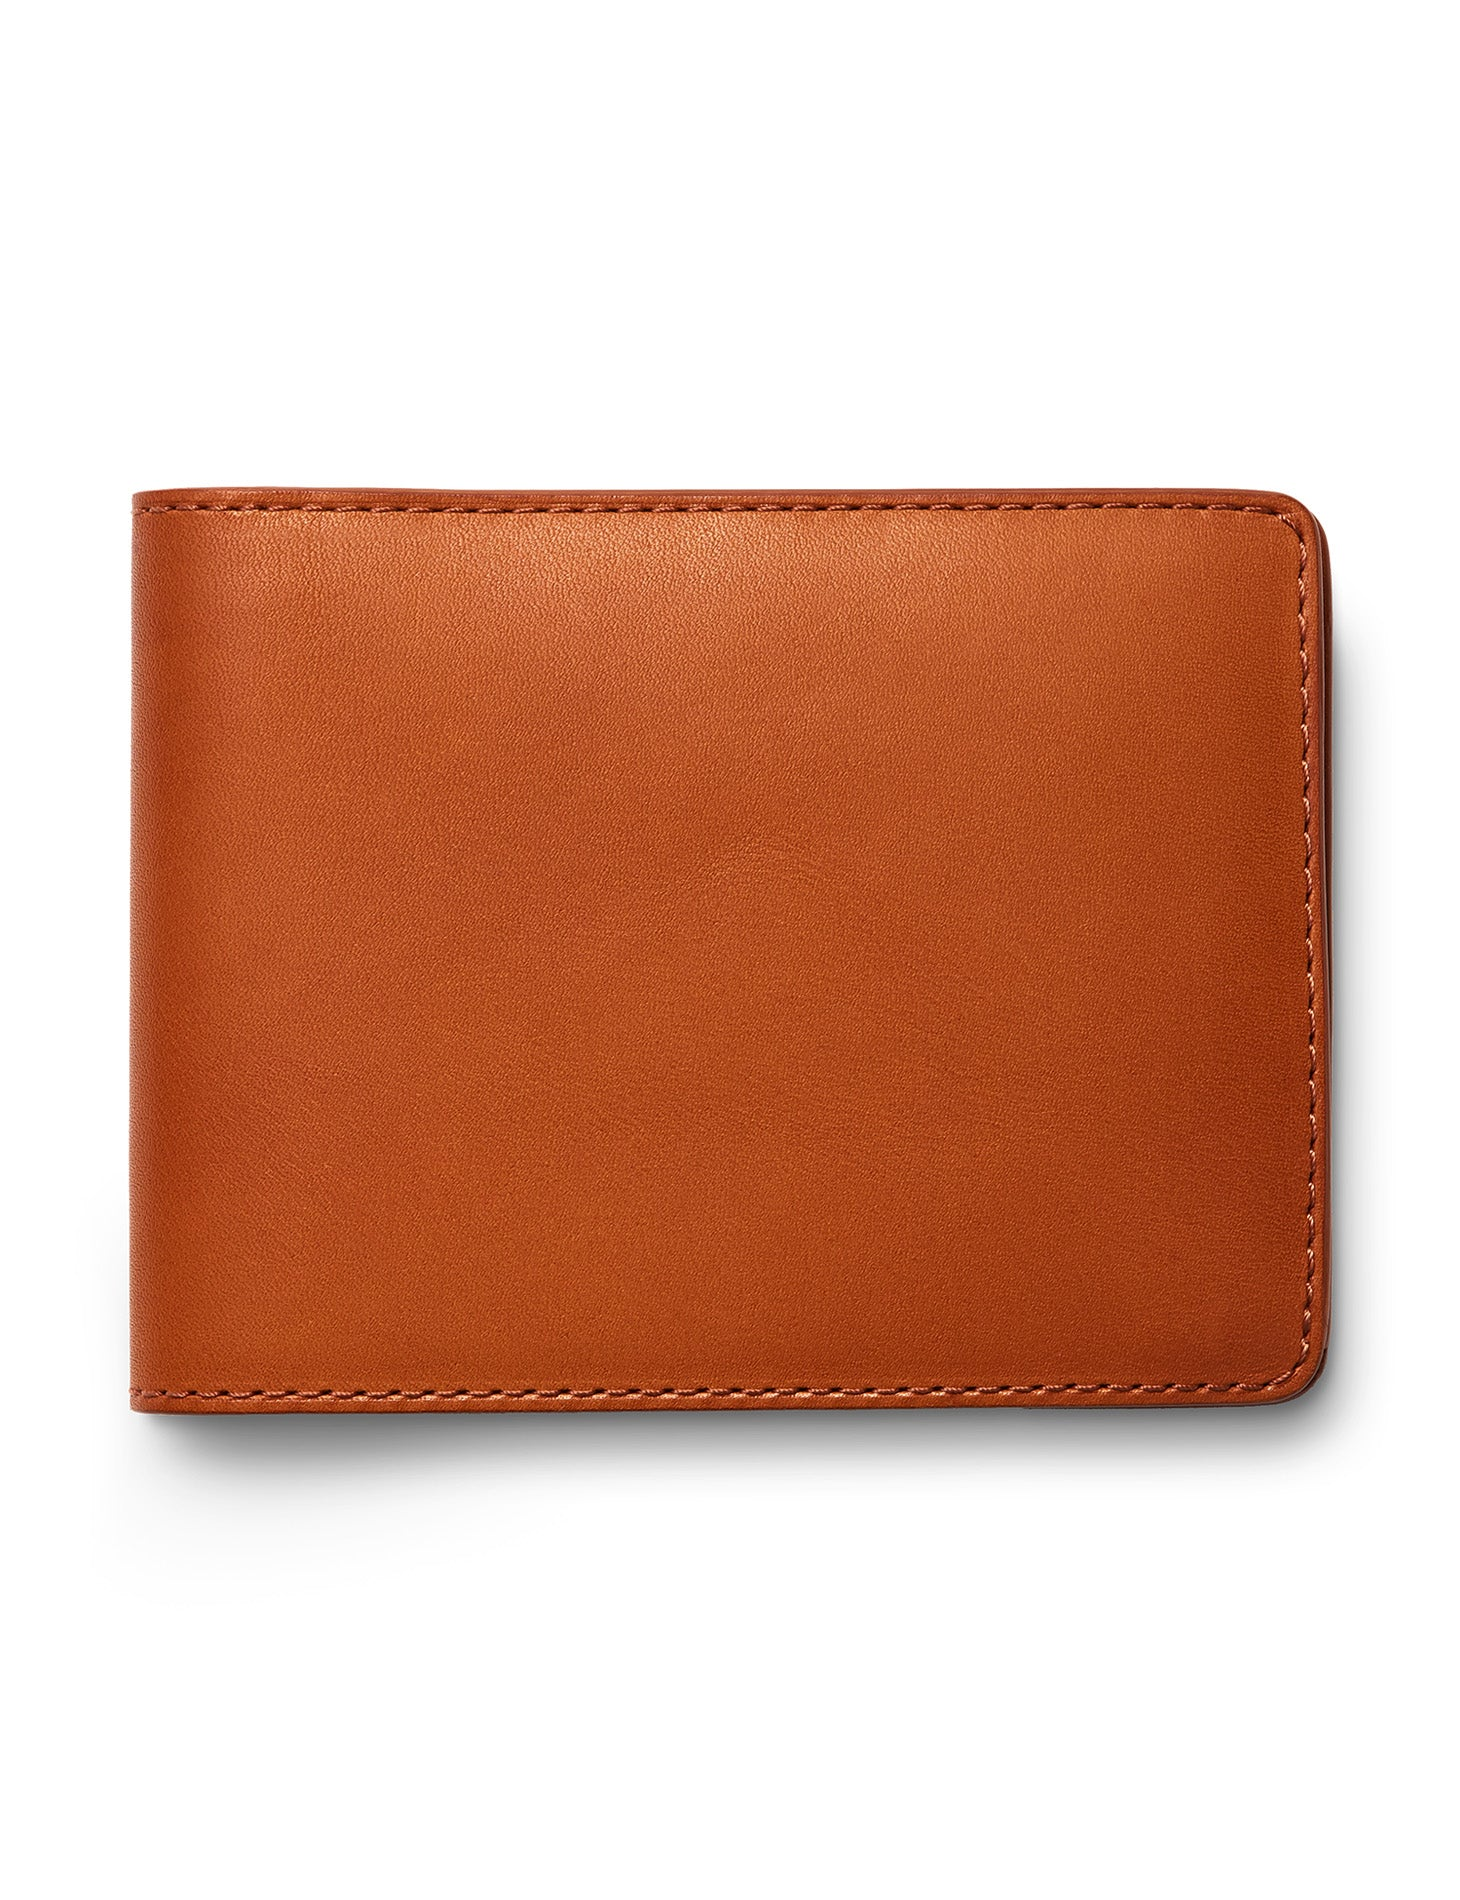 David August Luxury Genuine Vintage Calfskin Leather Bi-Fold Wallet in Brown